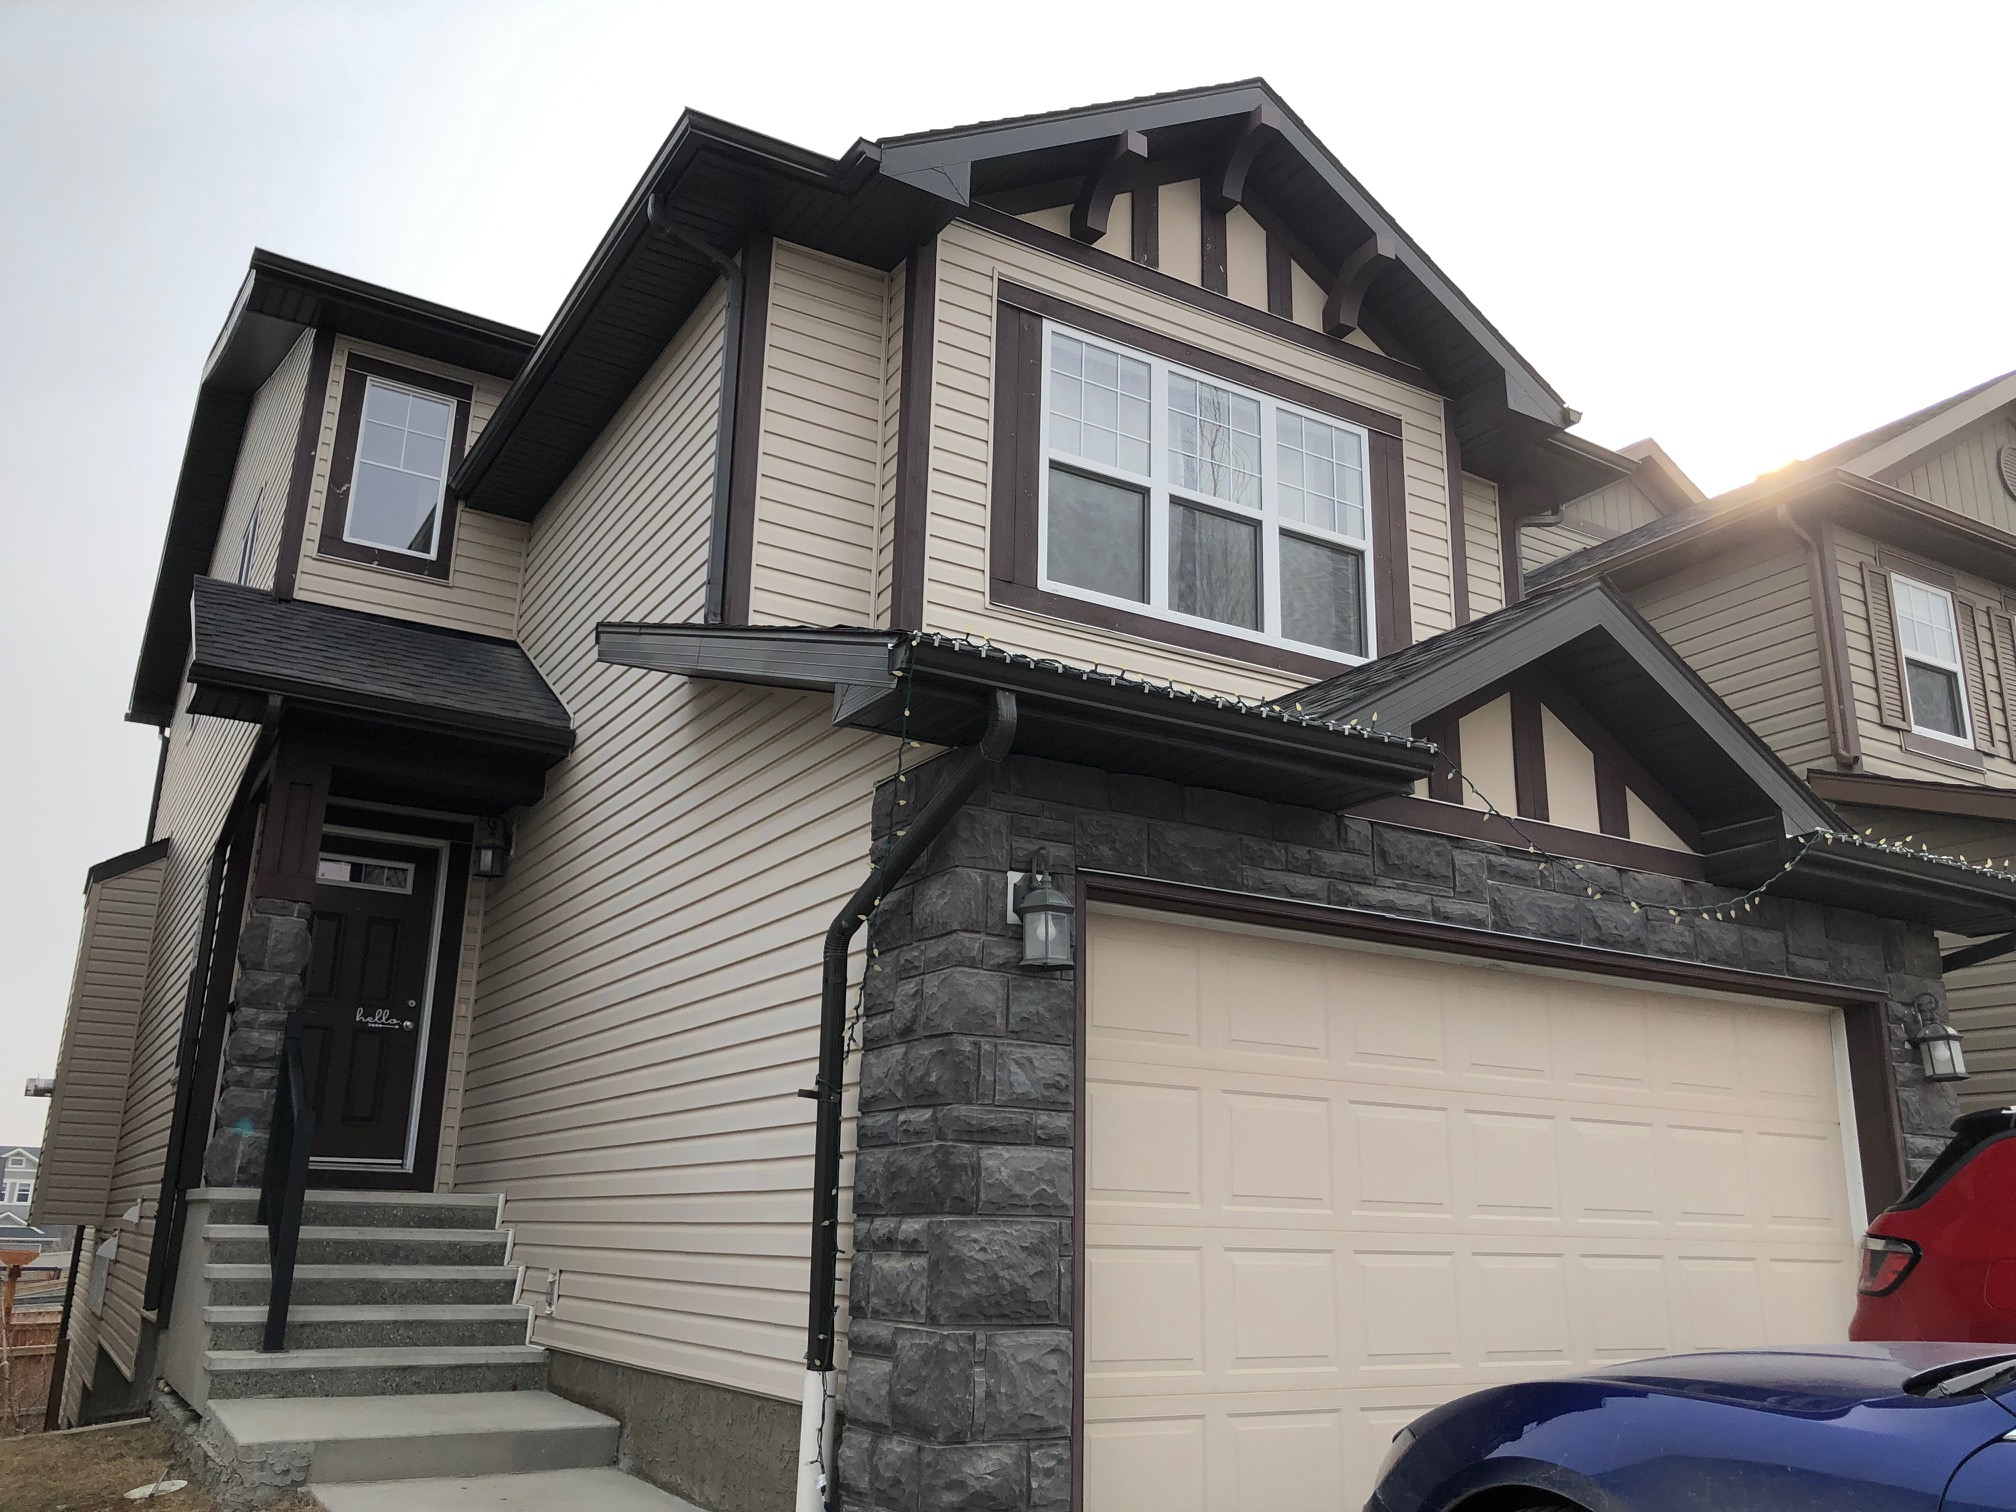 lovely 3 bedroom and 2.5 bath 2 storey home with a WALKOUT basement in Kincora!